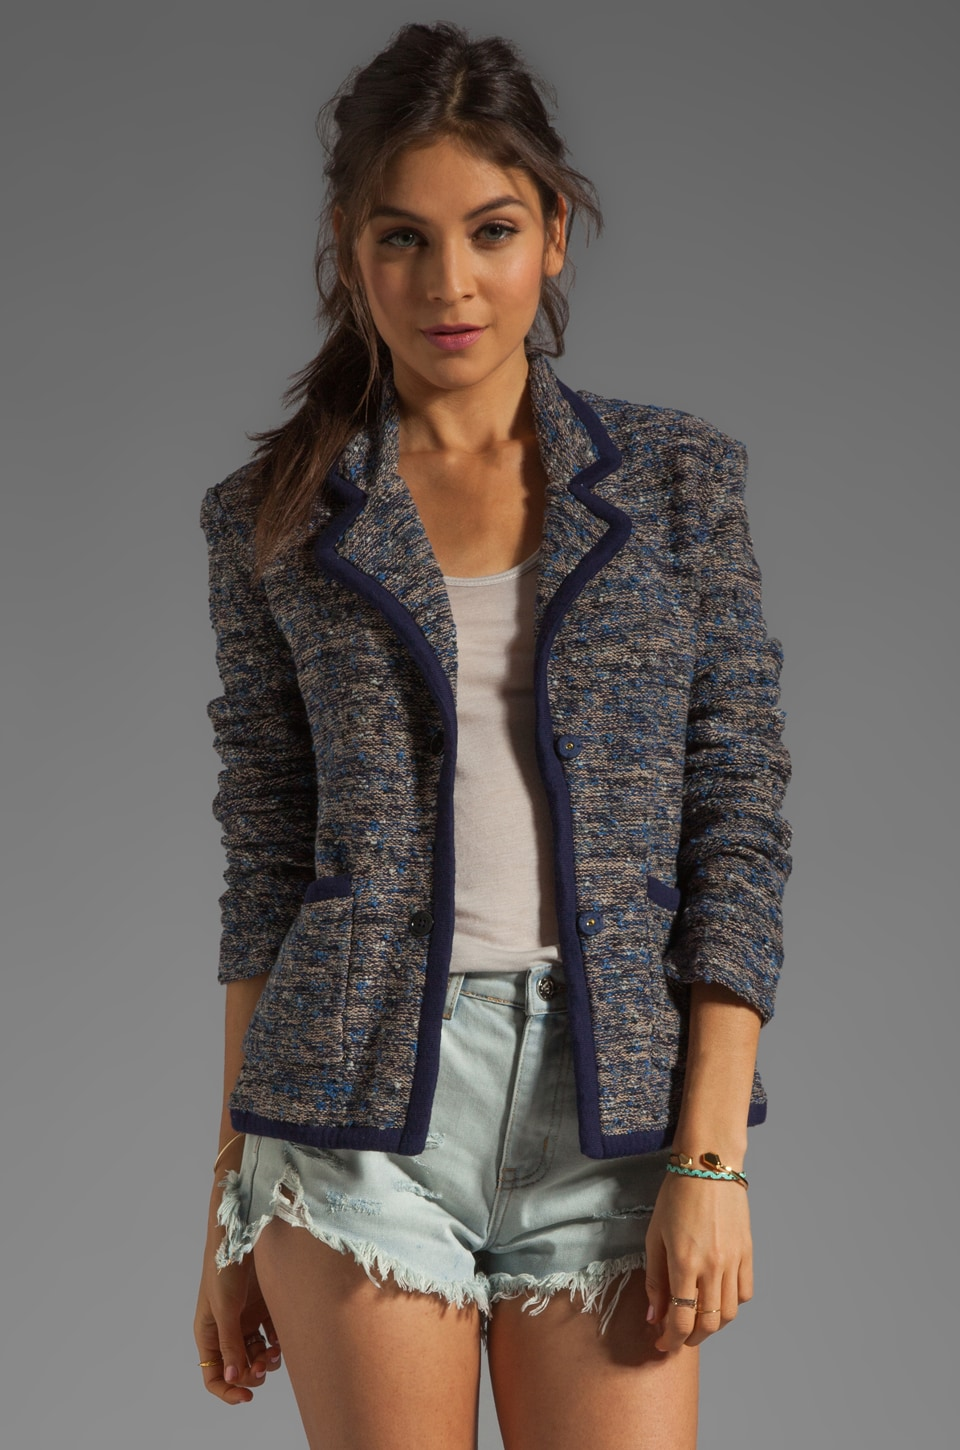 Marc by Marc Jacobs Suze Sweater Blazer in Normandy Blue Multi